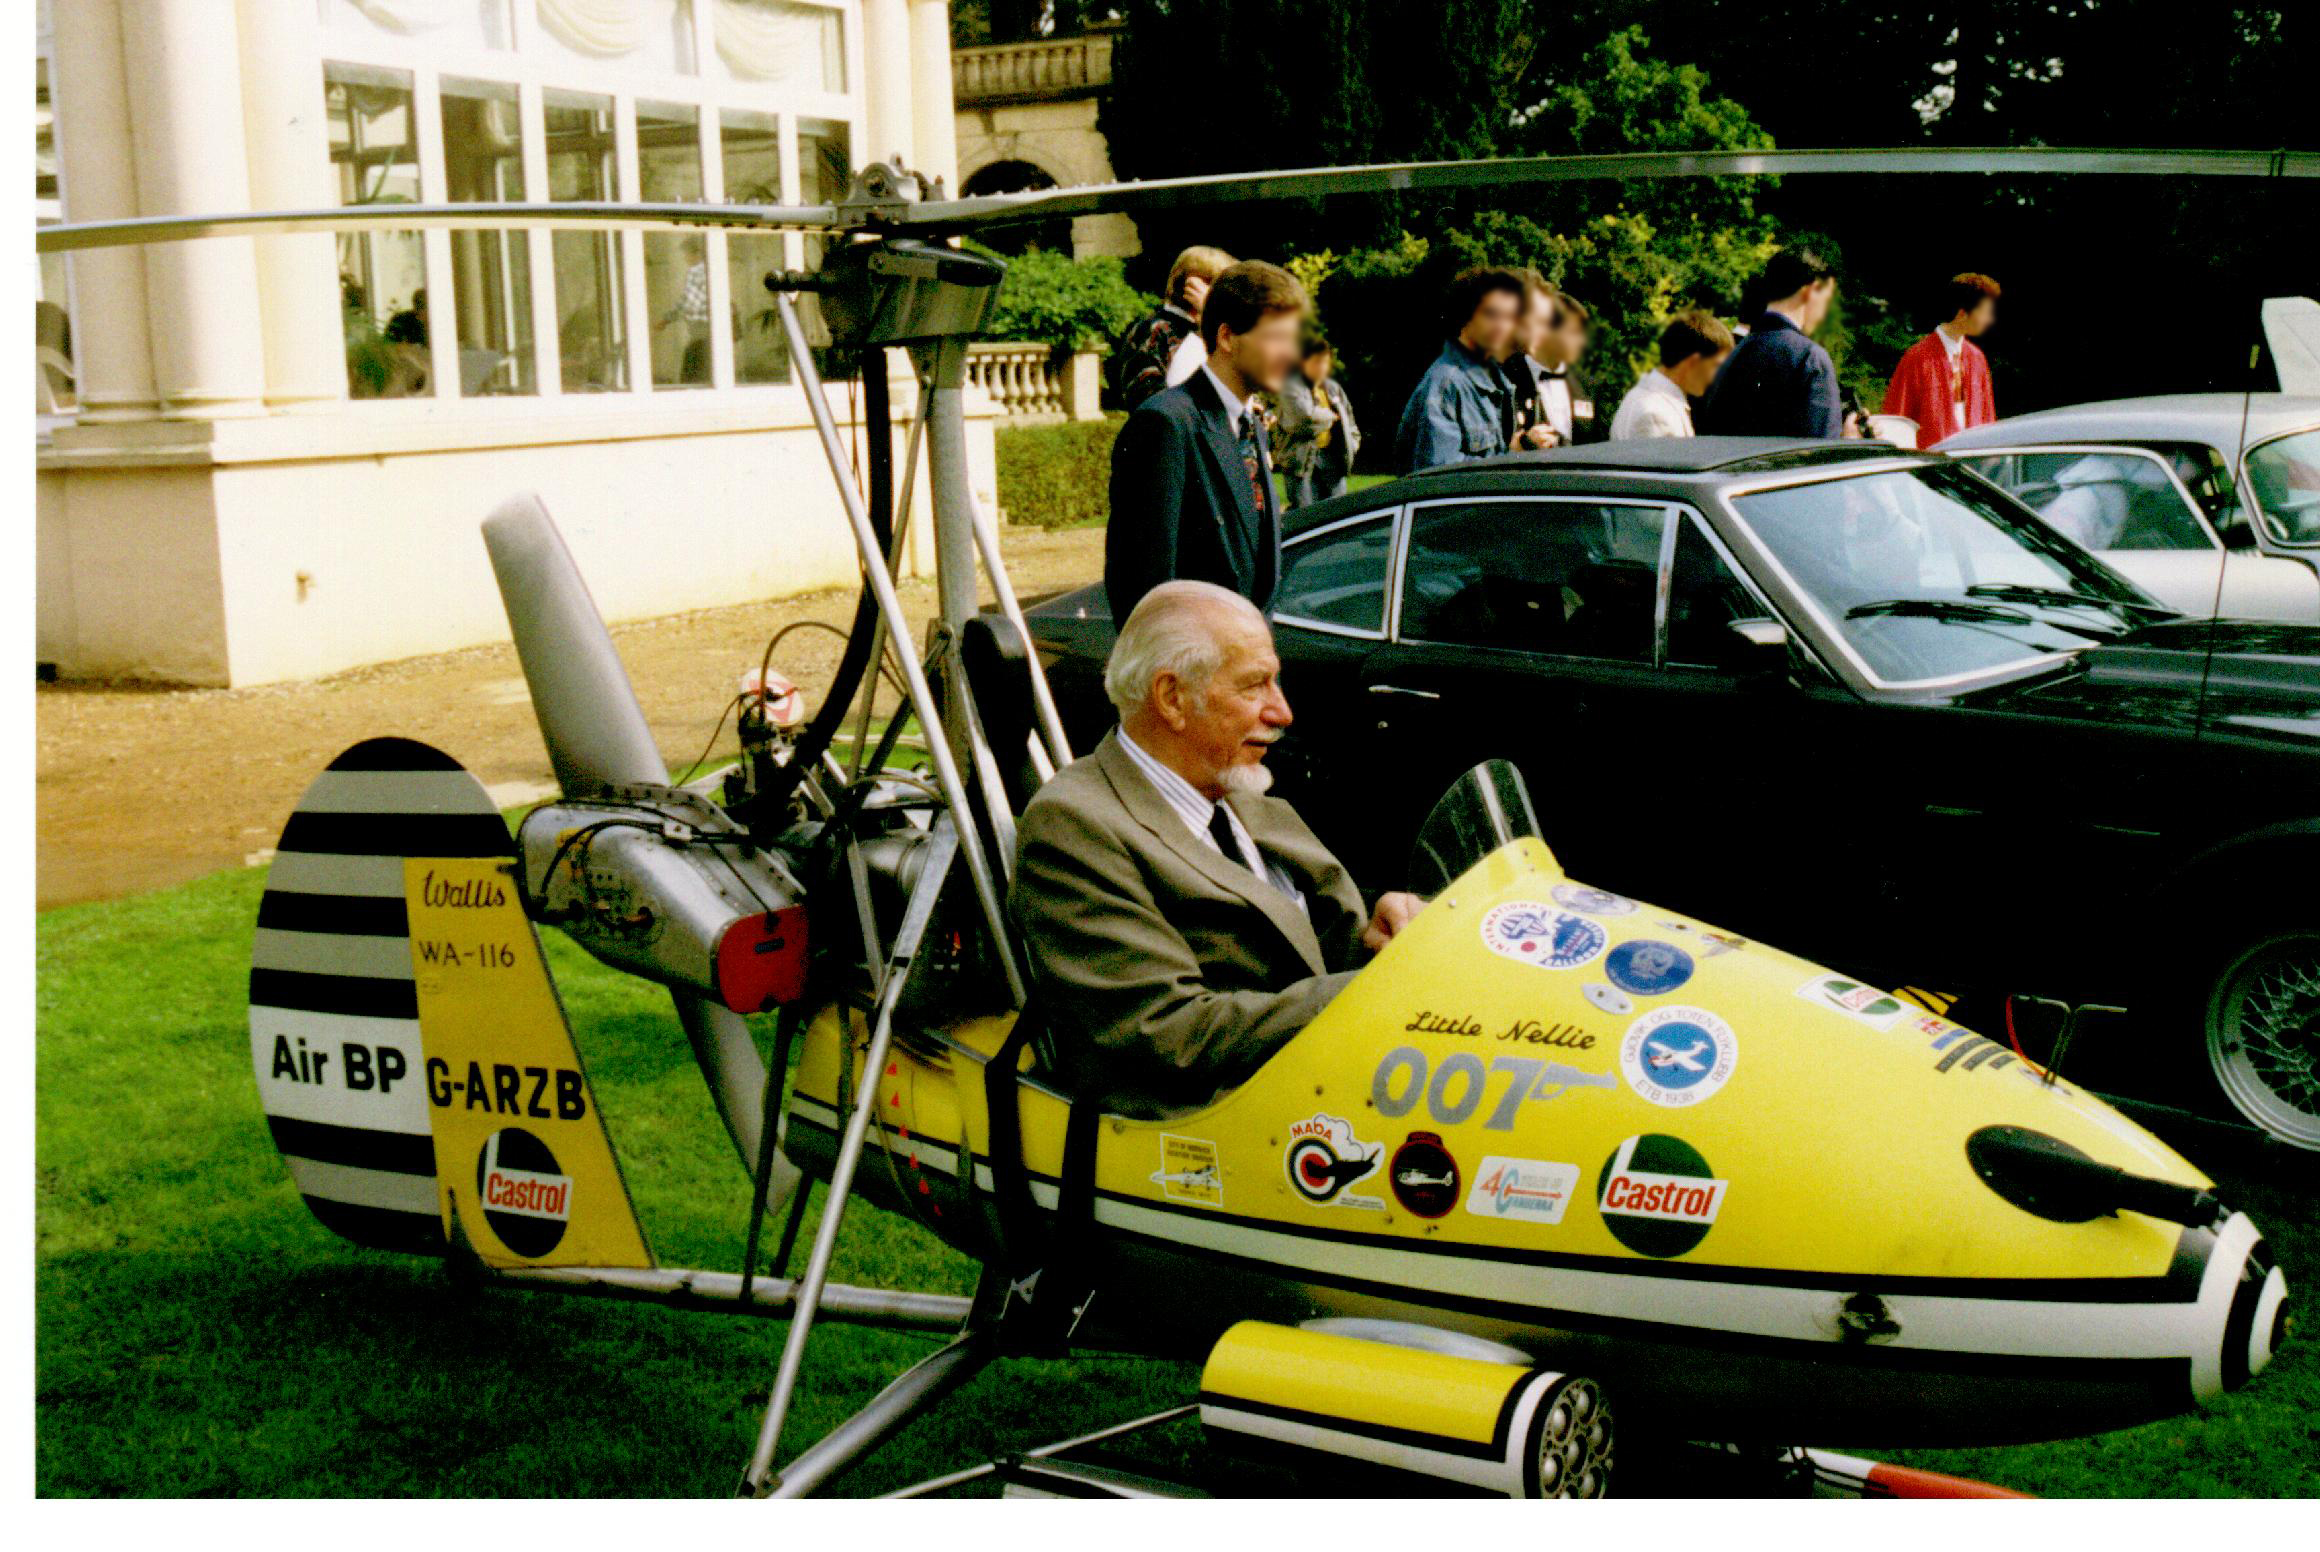 Ken Wallis pictured in the Little Nellie Autogyro, which appeared in the James Bond movie You only live twice